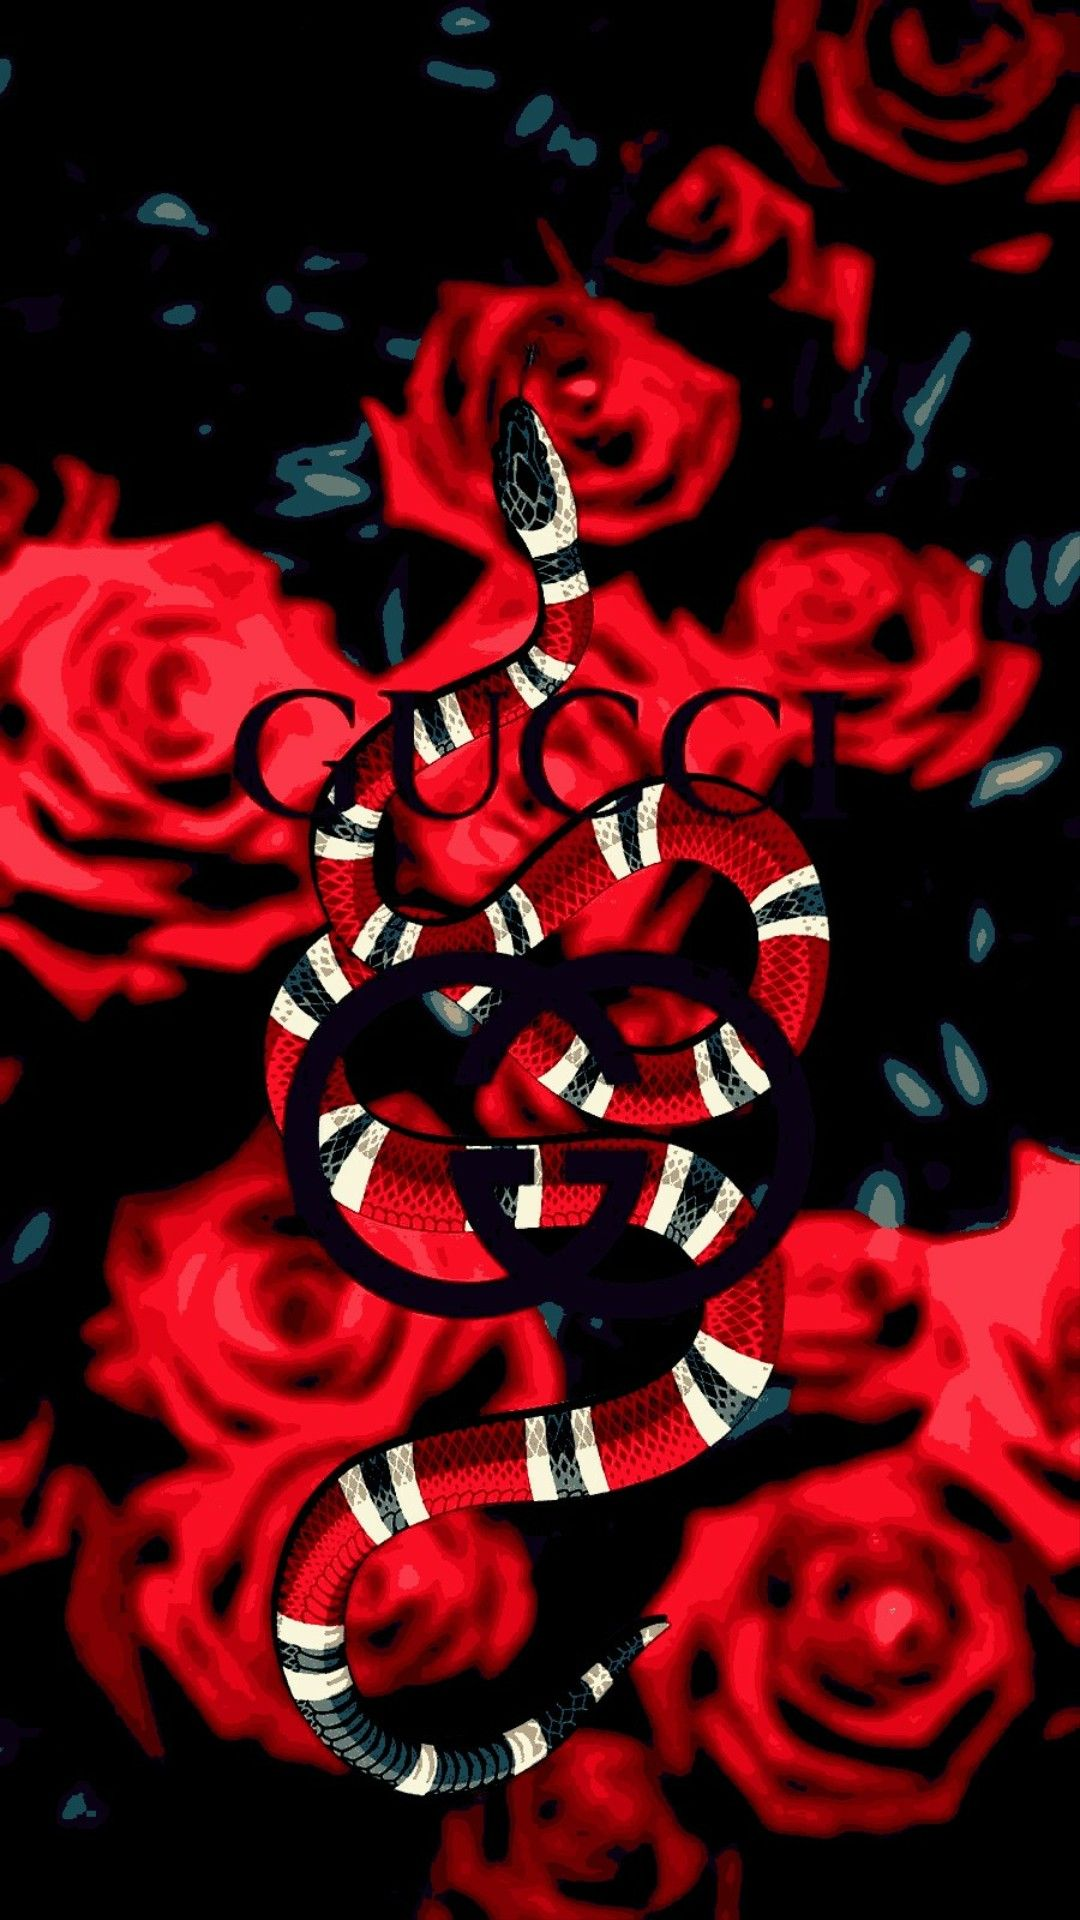 Roses of Gucci Snake Watchfaces in 2019 Gucci wallpaper iphone 1080x1920